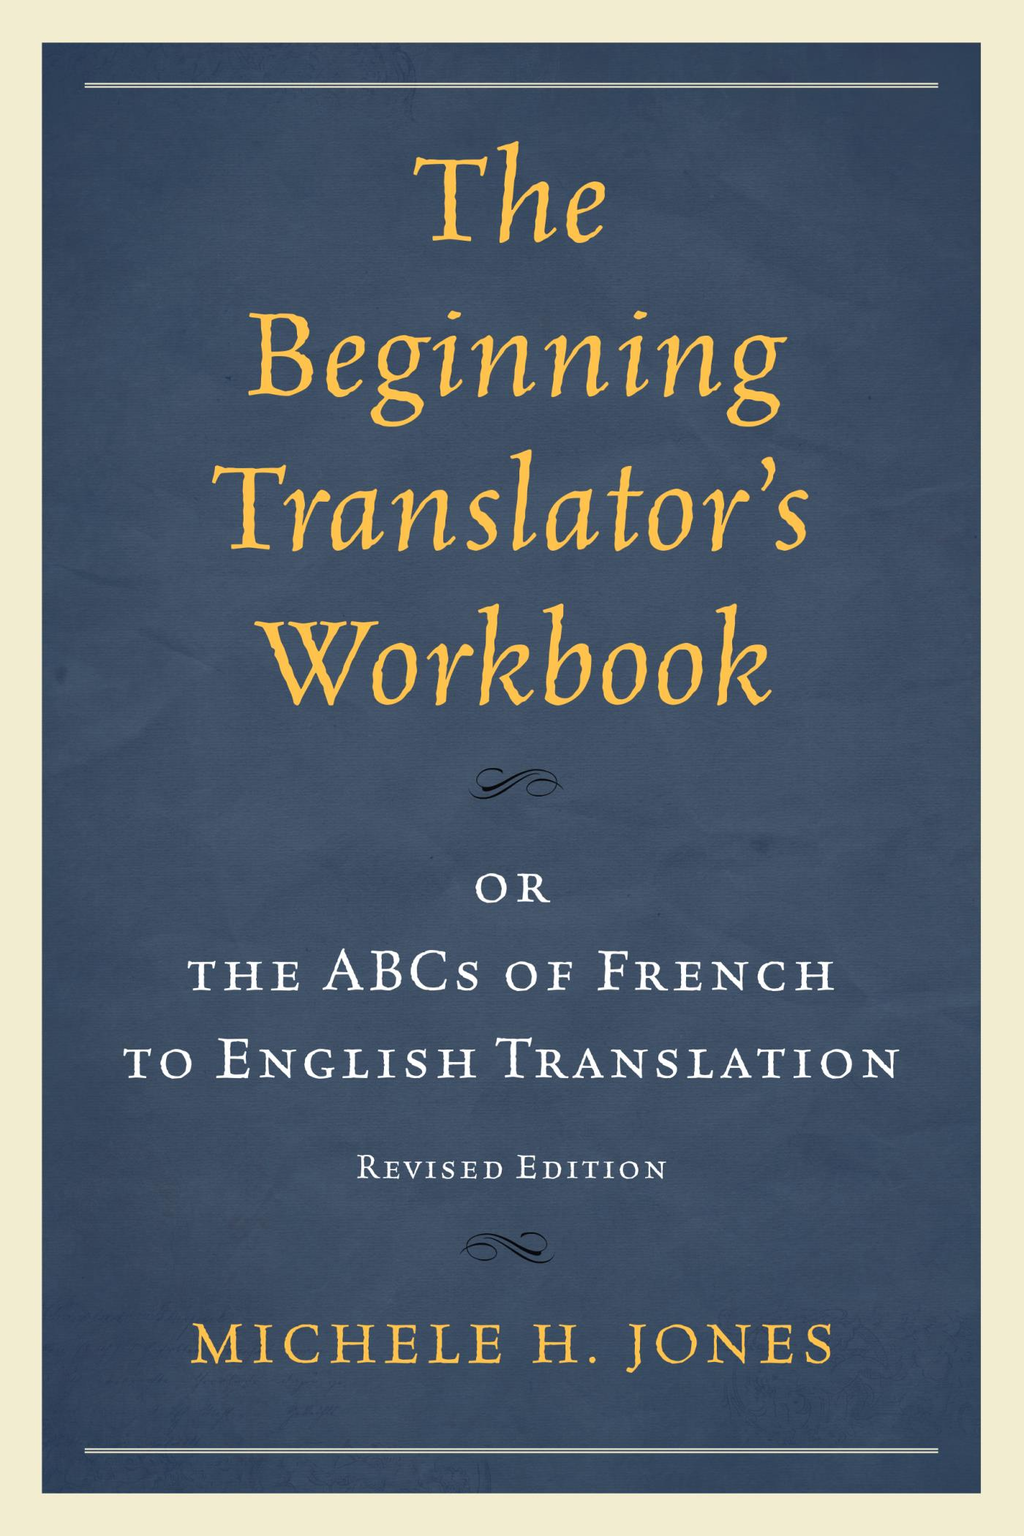 The Beginning Translator?s Workbook or the ABCs of French to English Translation